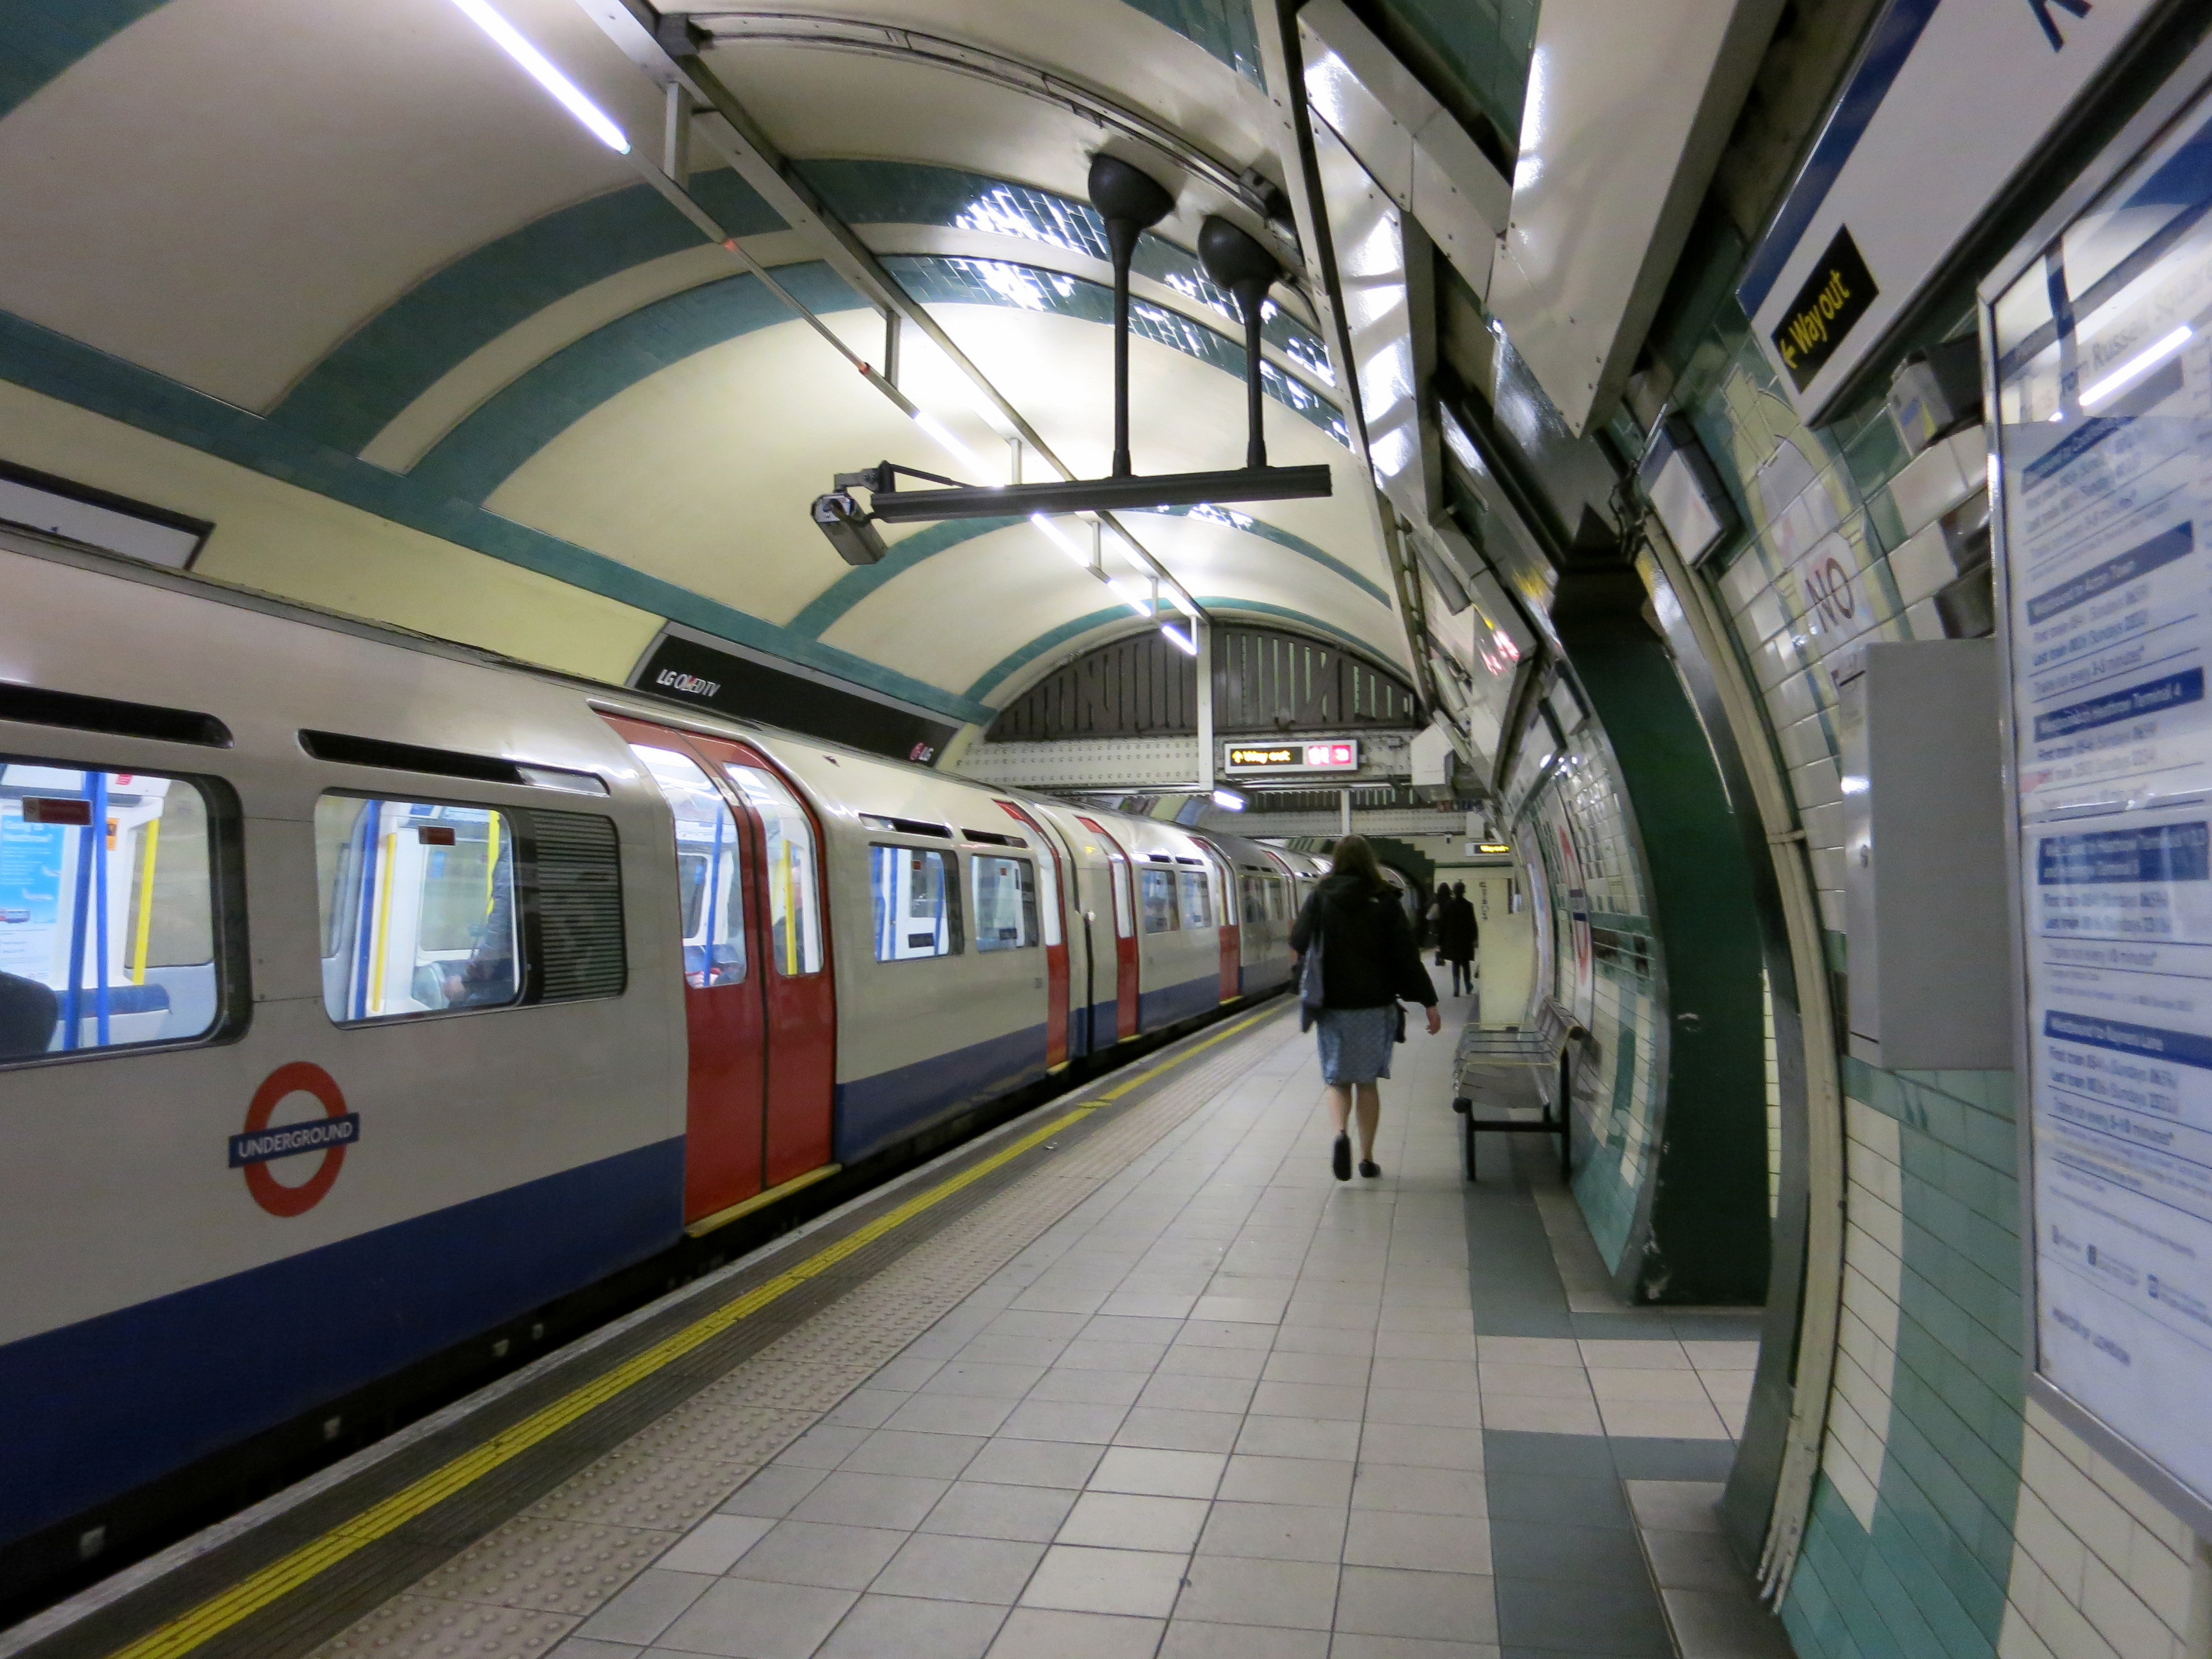 FileEastbound Piccadilly Line platform at Gloucester Road tube